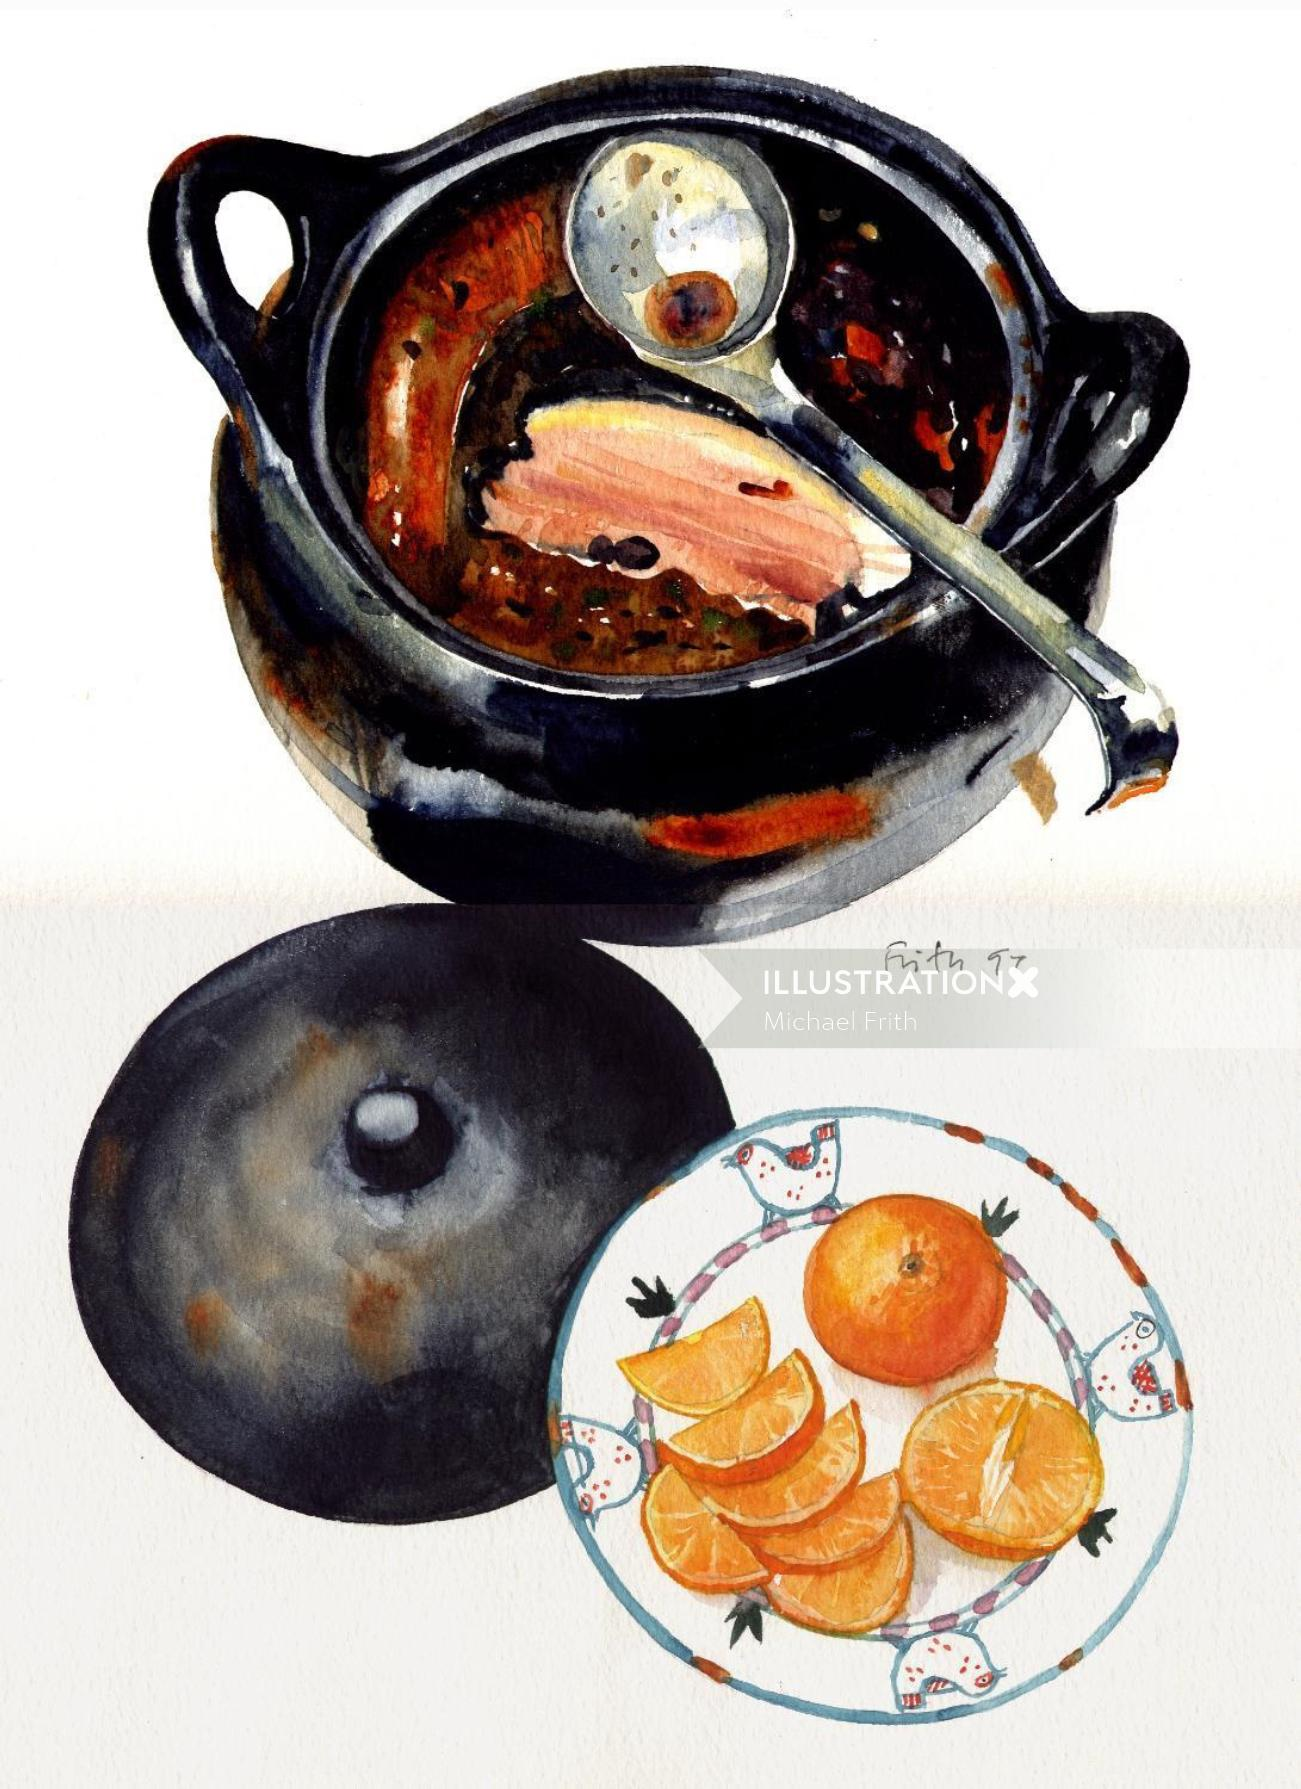 Food illustration by Michael Frith